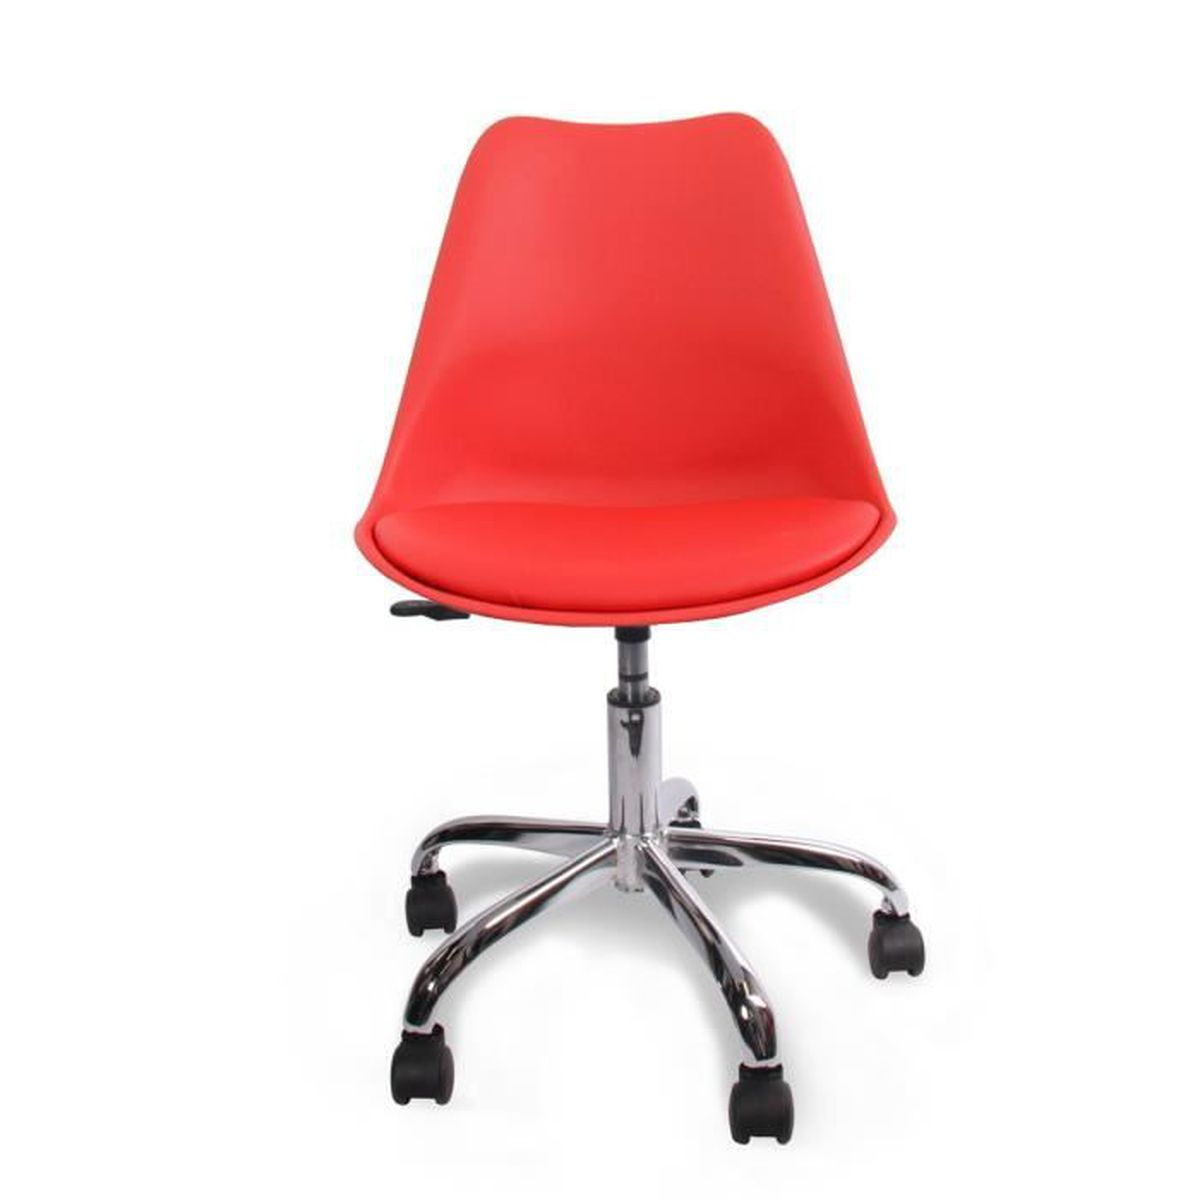 Chaise de bureau ormond office couleur rouge achat for Chaise longue de couleur